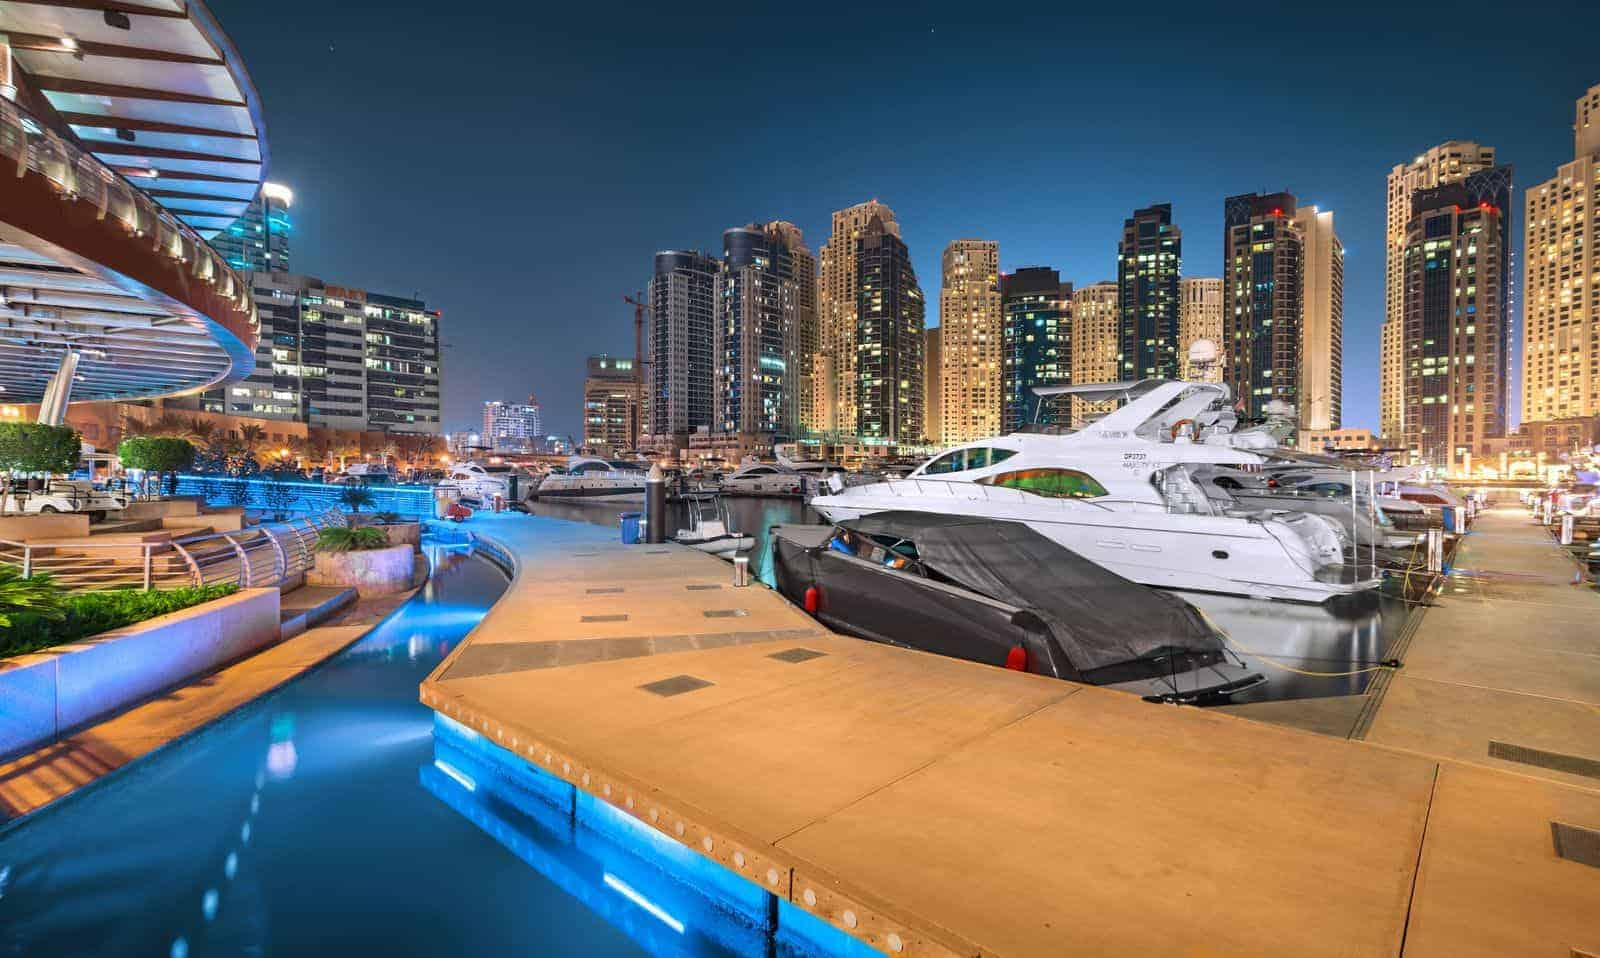 Leisure and Lifestyle in Dubai